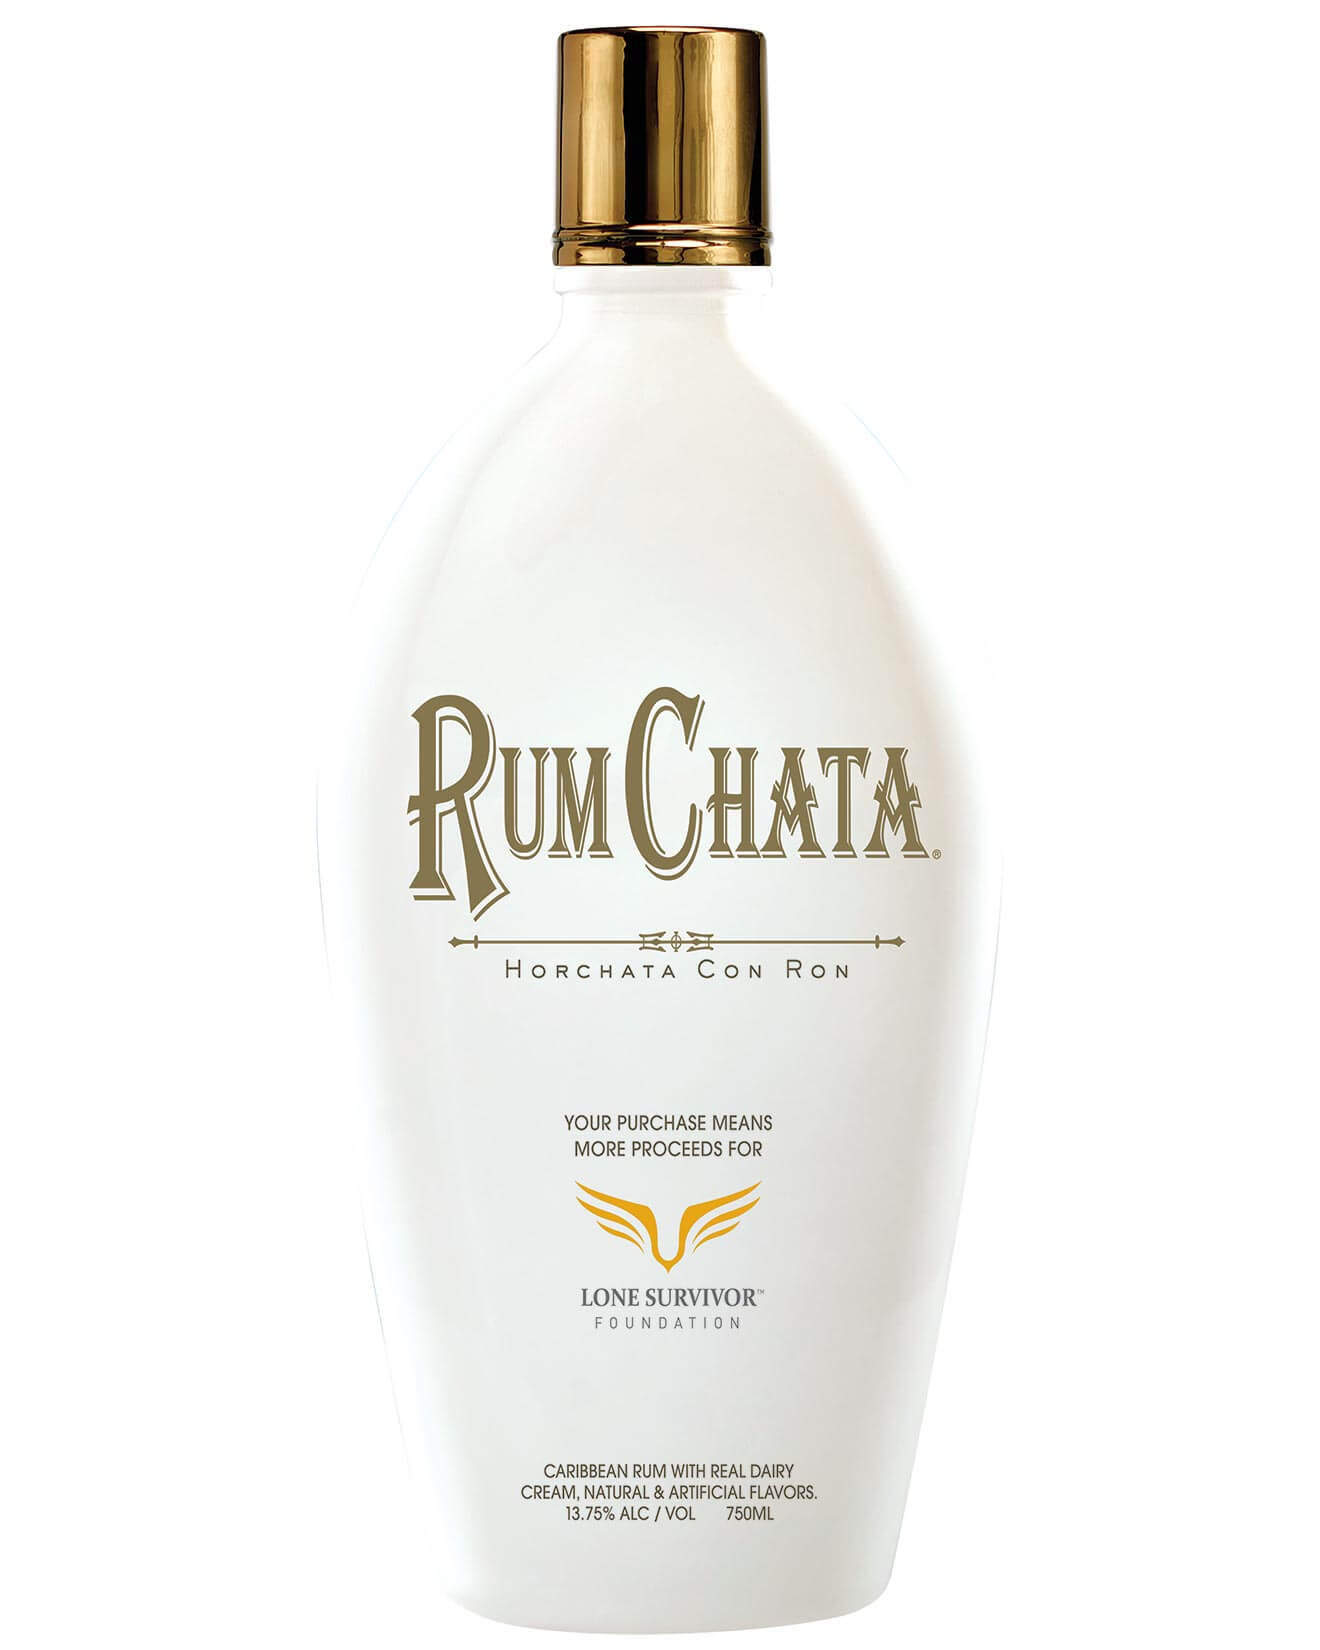 RumChata Freedom Bottle 2018, bottle on white